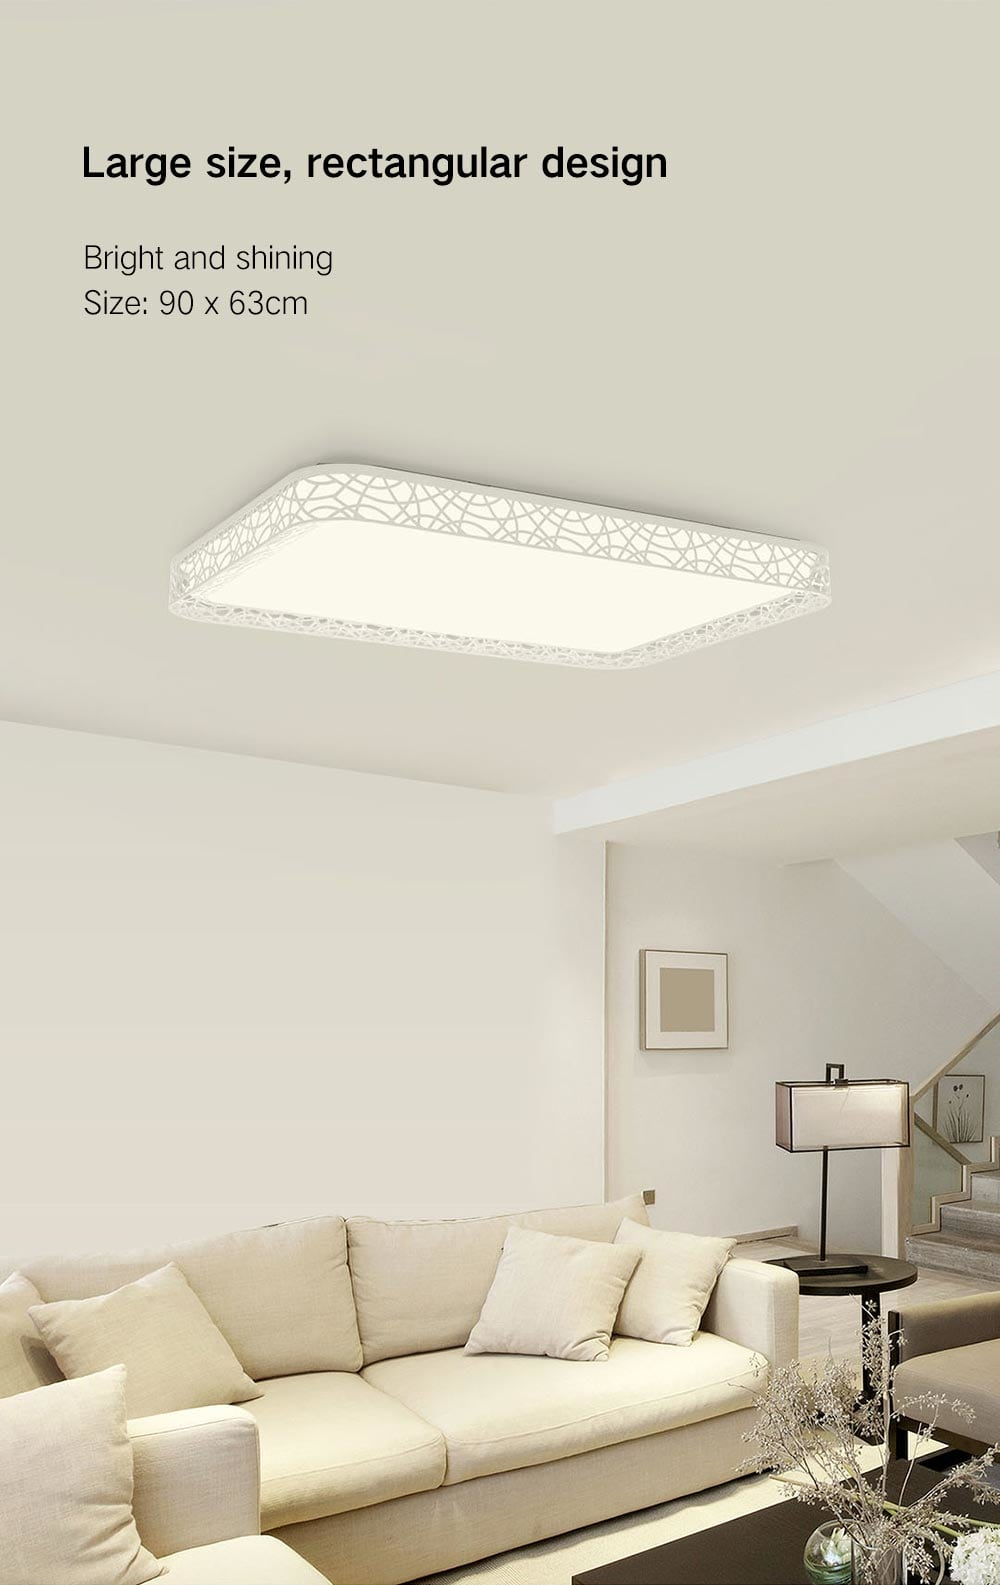 Yeelight YILAI YlXD07Yl Rectangle Style Hollow Ceiling Light Pro for Home- White